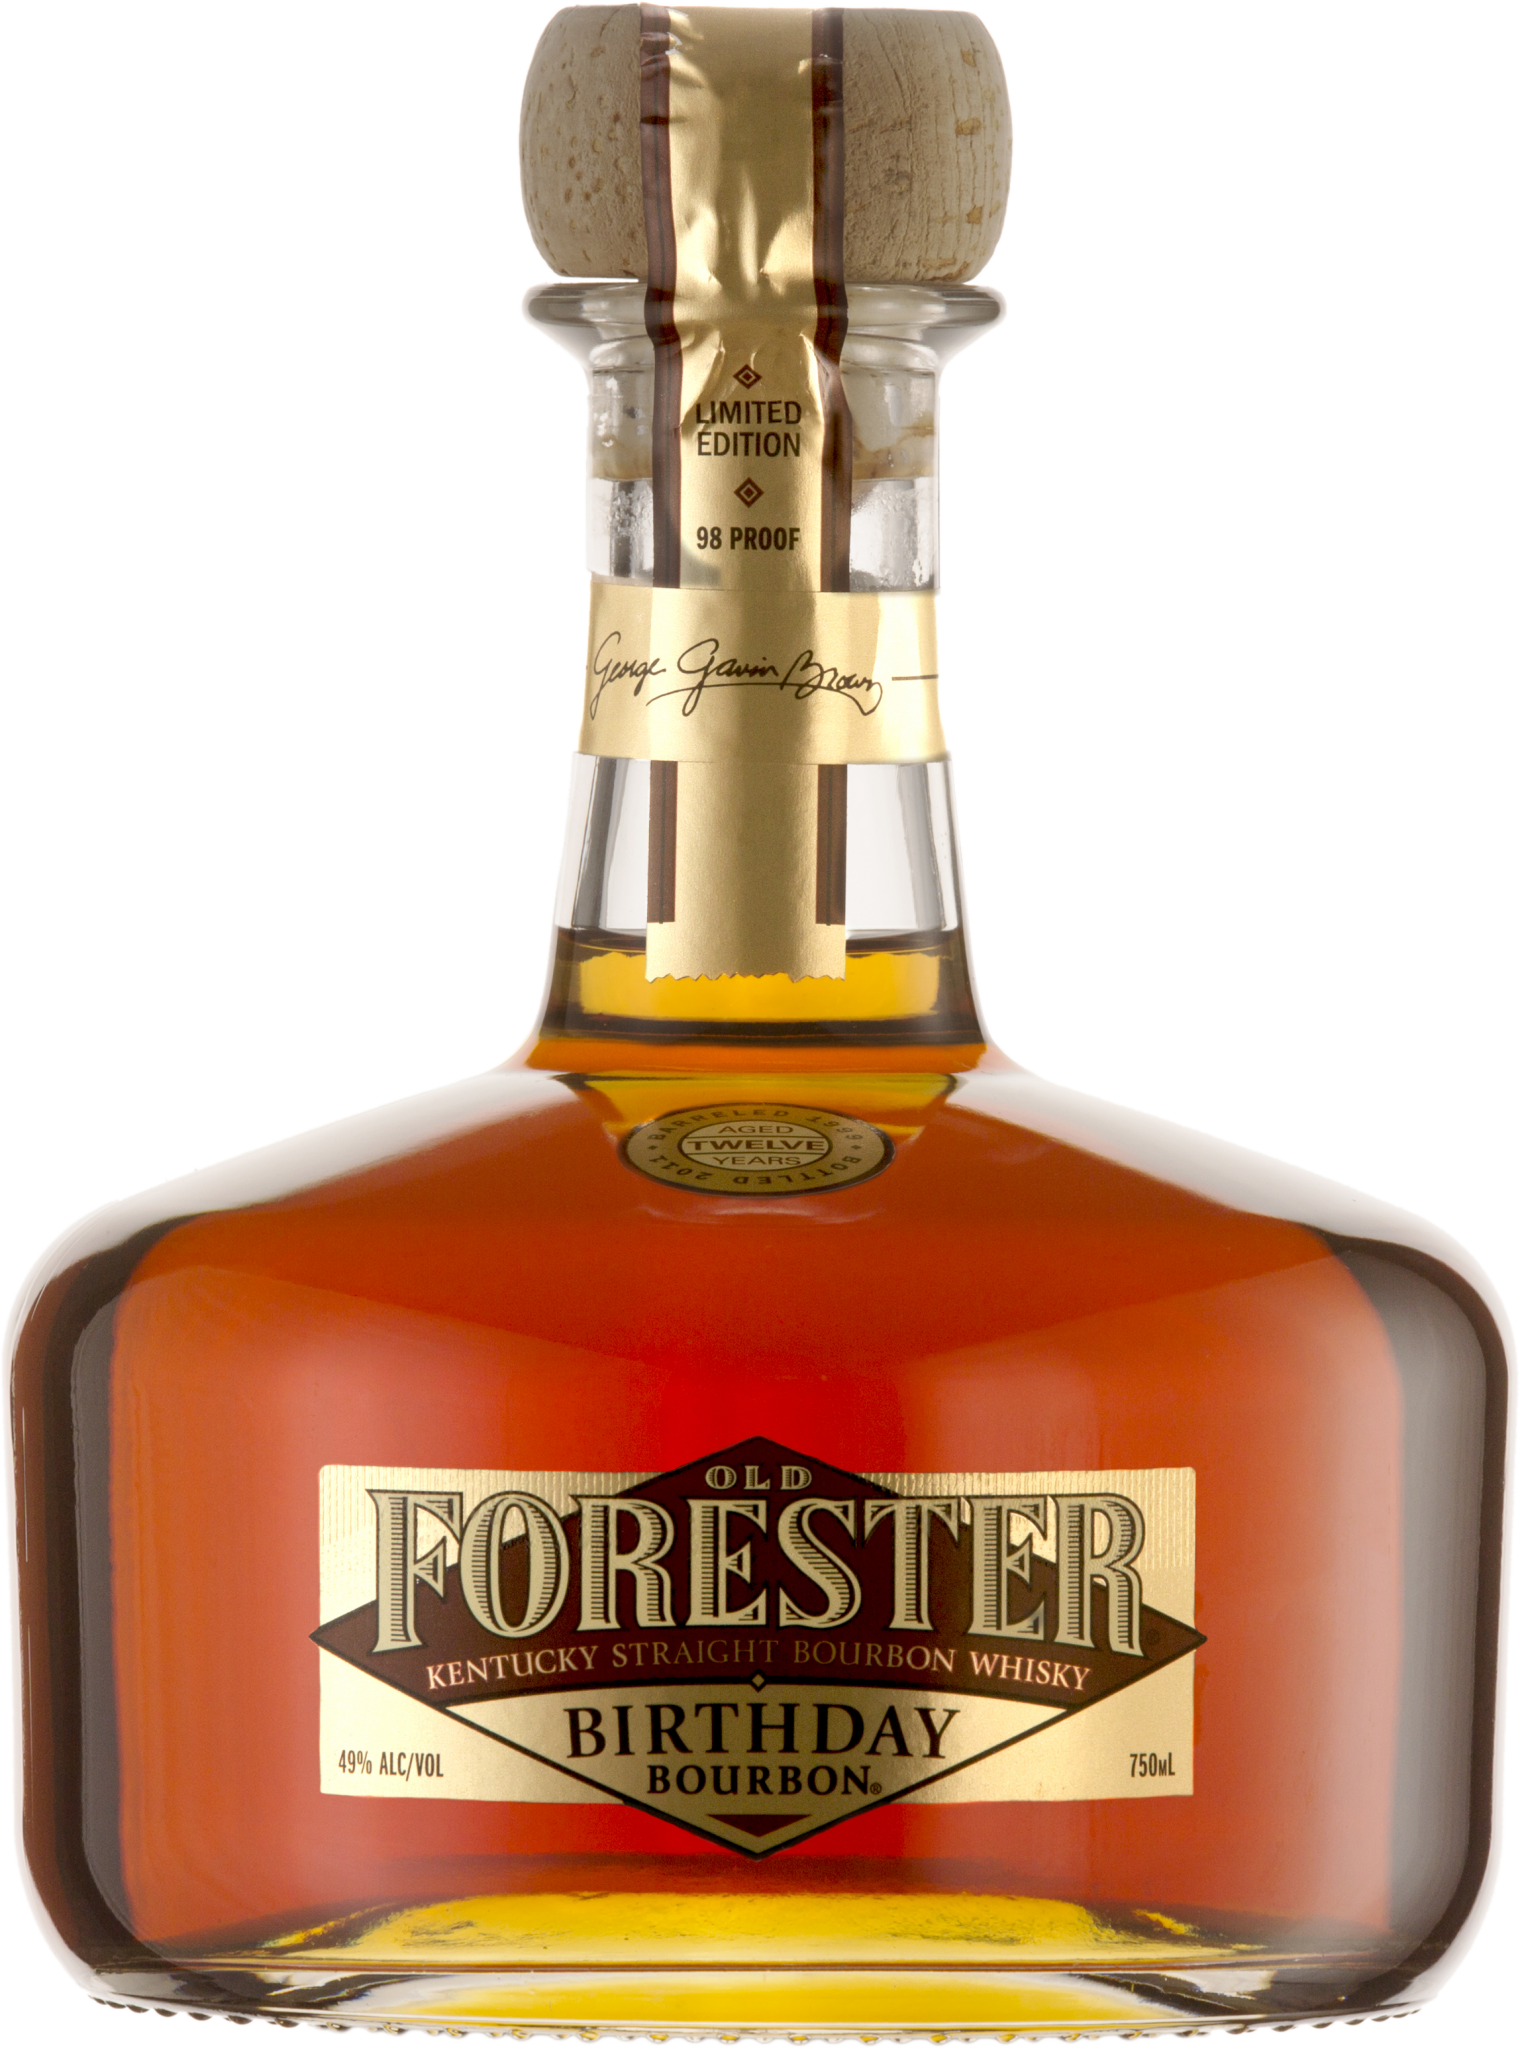 A bottle of Old Forester 2011 Birthday Bourbon on a black background.